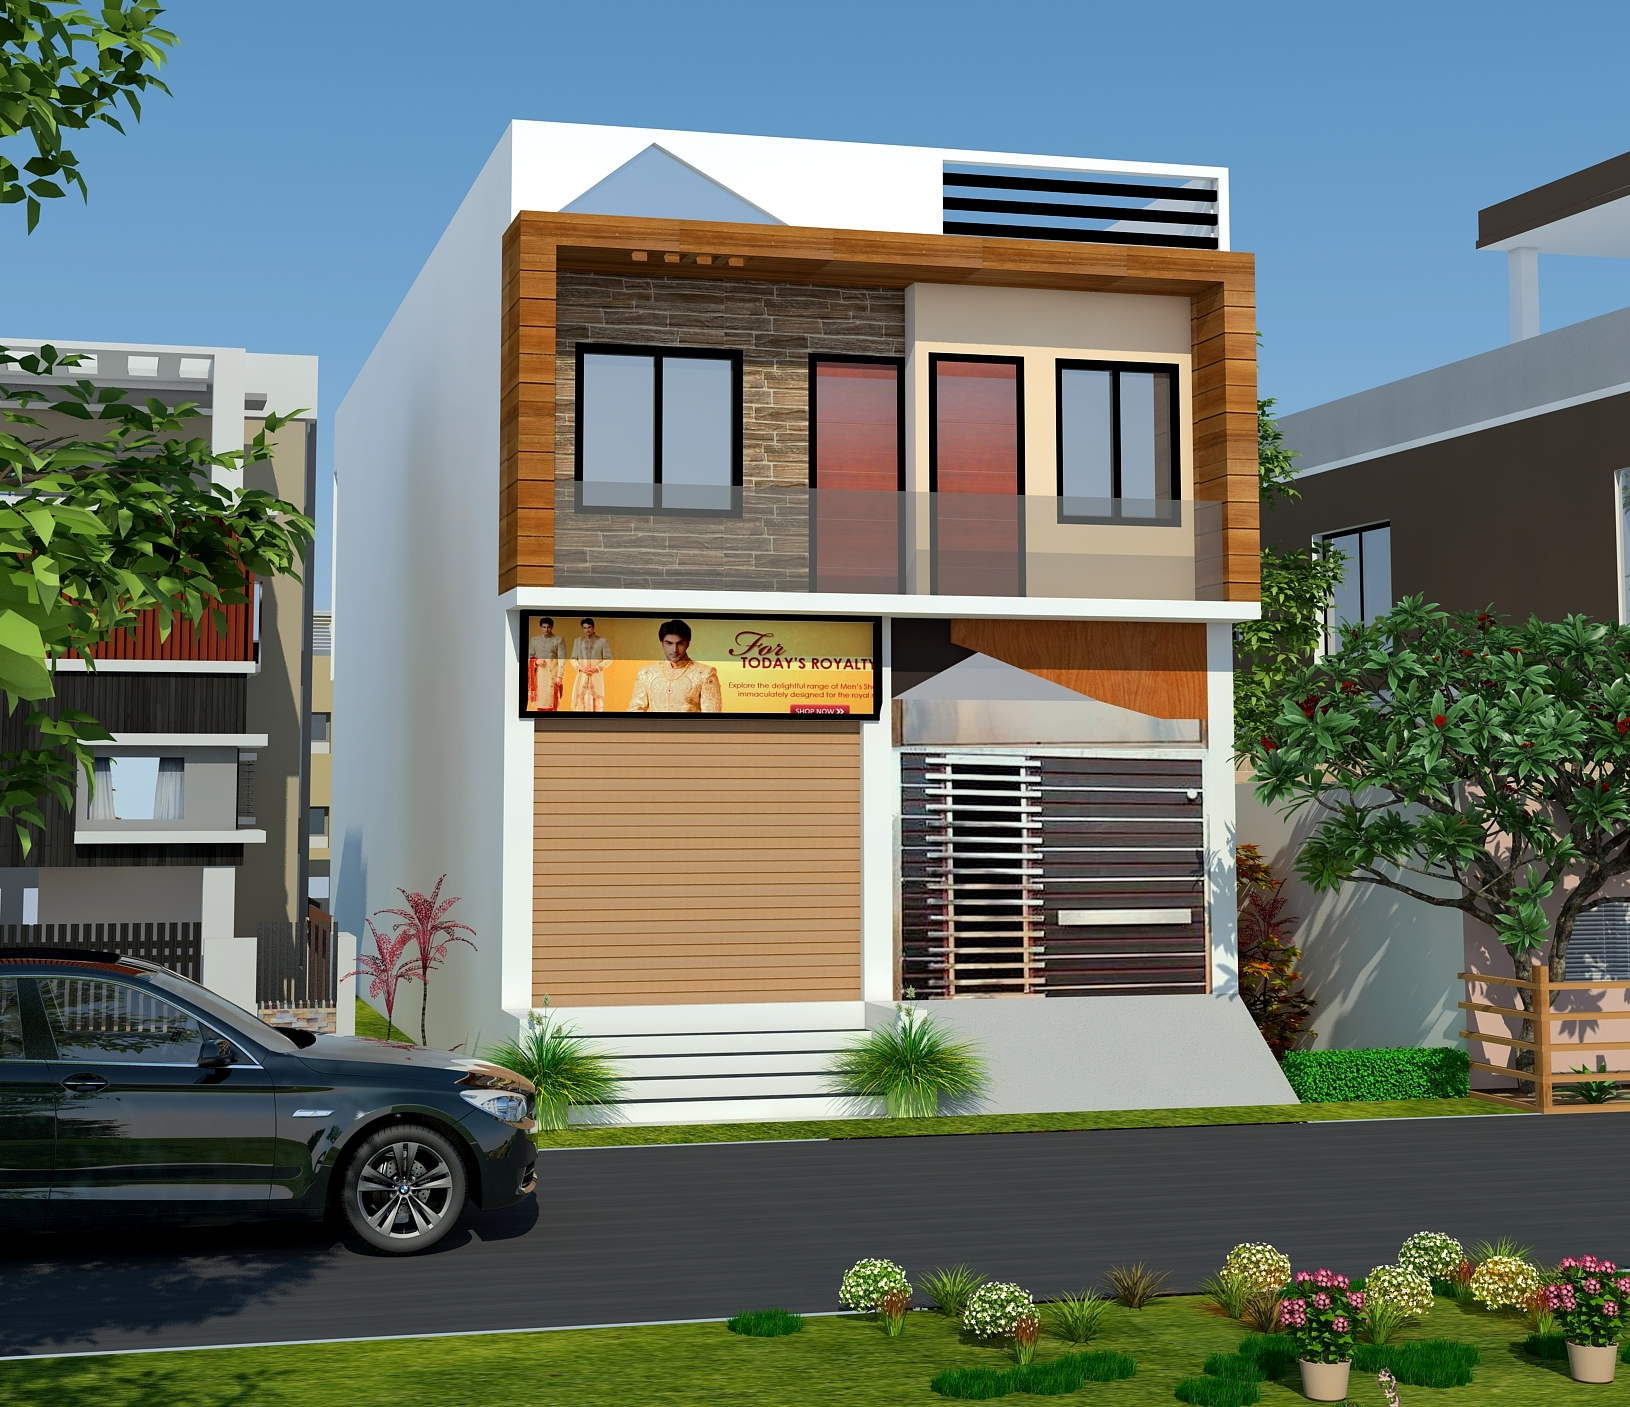 30 Feet Front Elevation Design : I need a plan for south facing house according to vastu